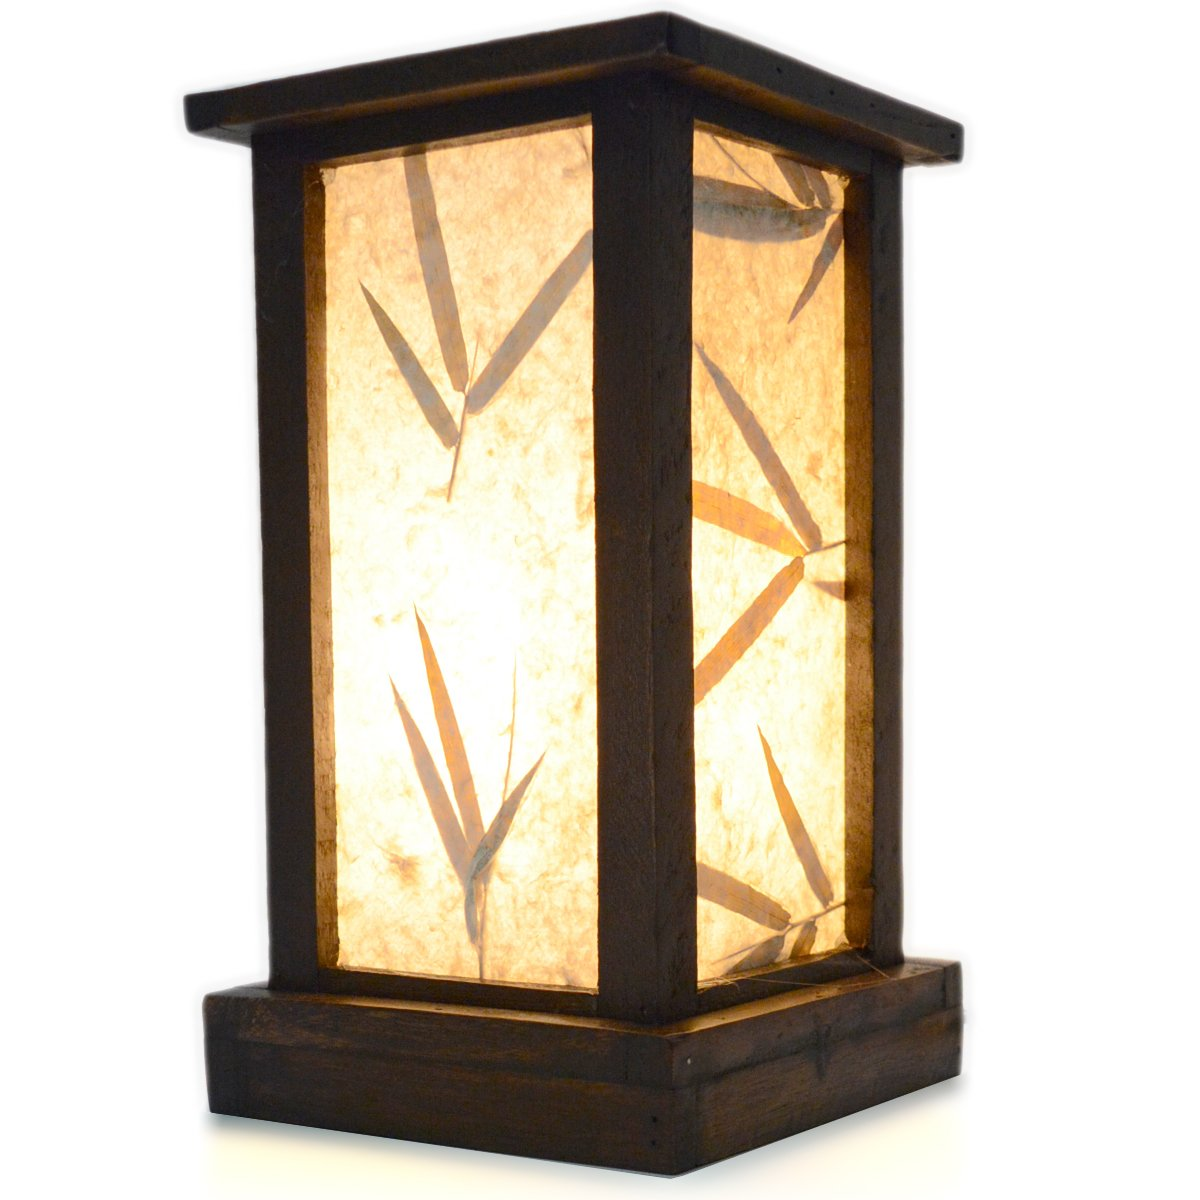 FAI Wood Frame and Paper Shade Rustic Accent Table Lamp, 10.5 inch Bamboo Leaf Shade by Fai Lighting